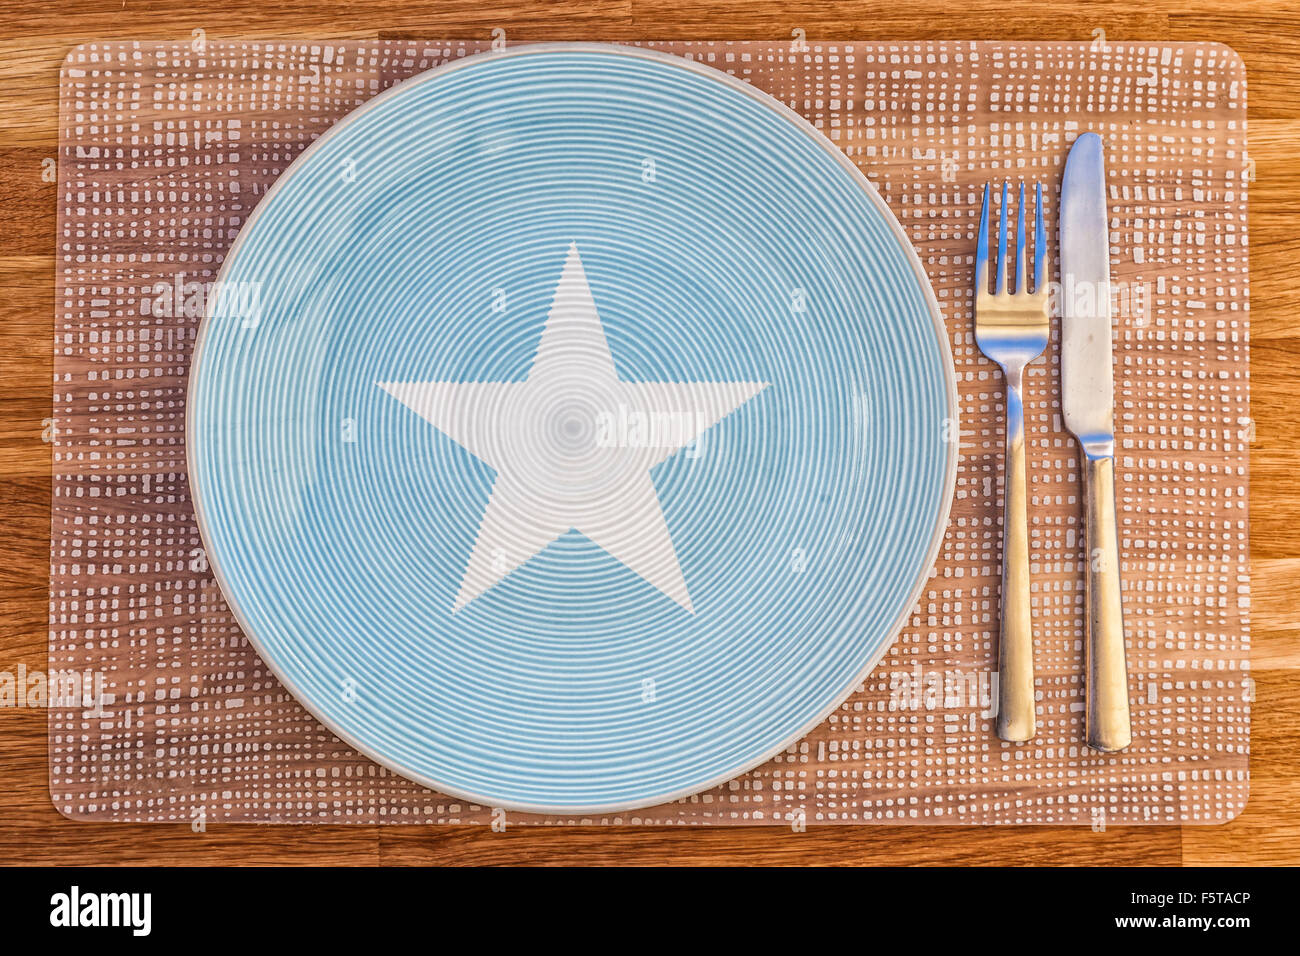 Dinner plate with the flag of Somalia on it for your international food and drink concepts. - Stock Image